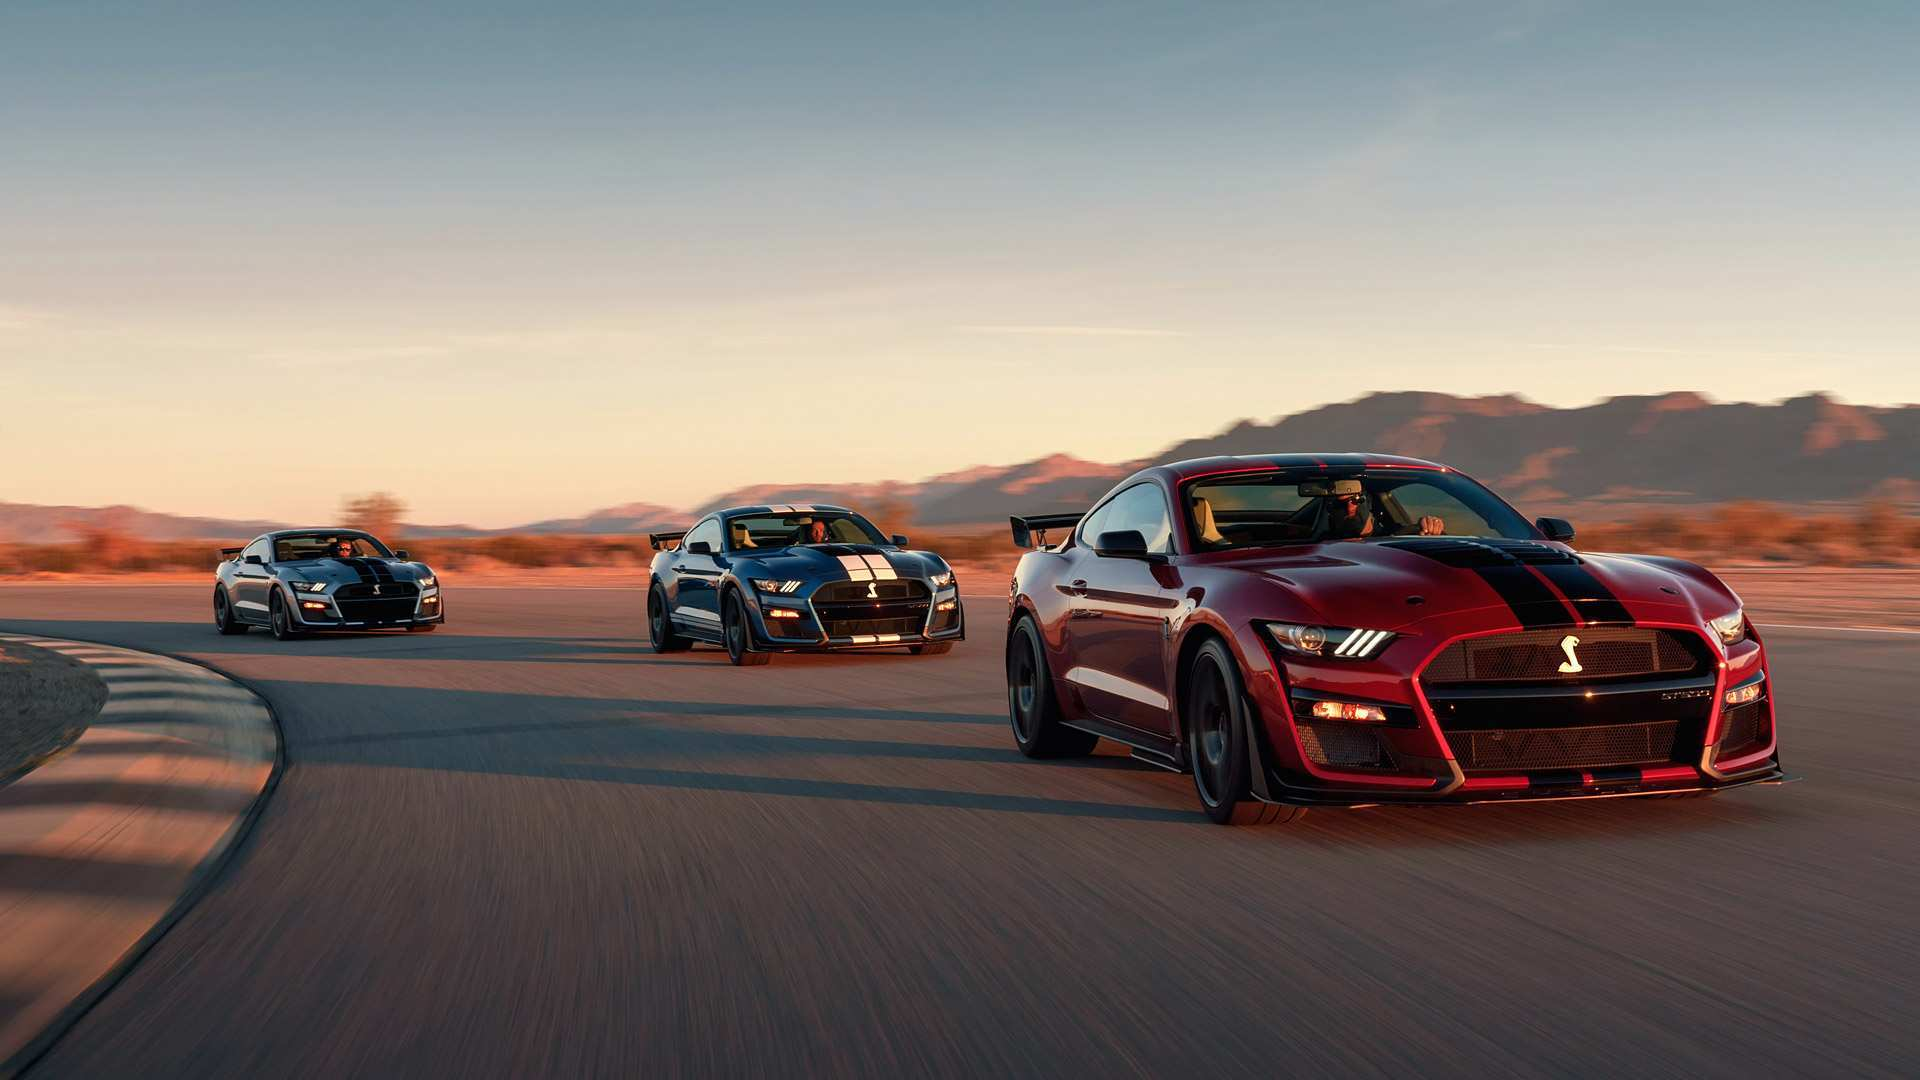 34 The 2020 Gt500 Wallpaper Images with 2020 Gt500 Wallpaper